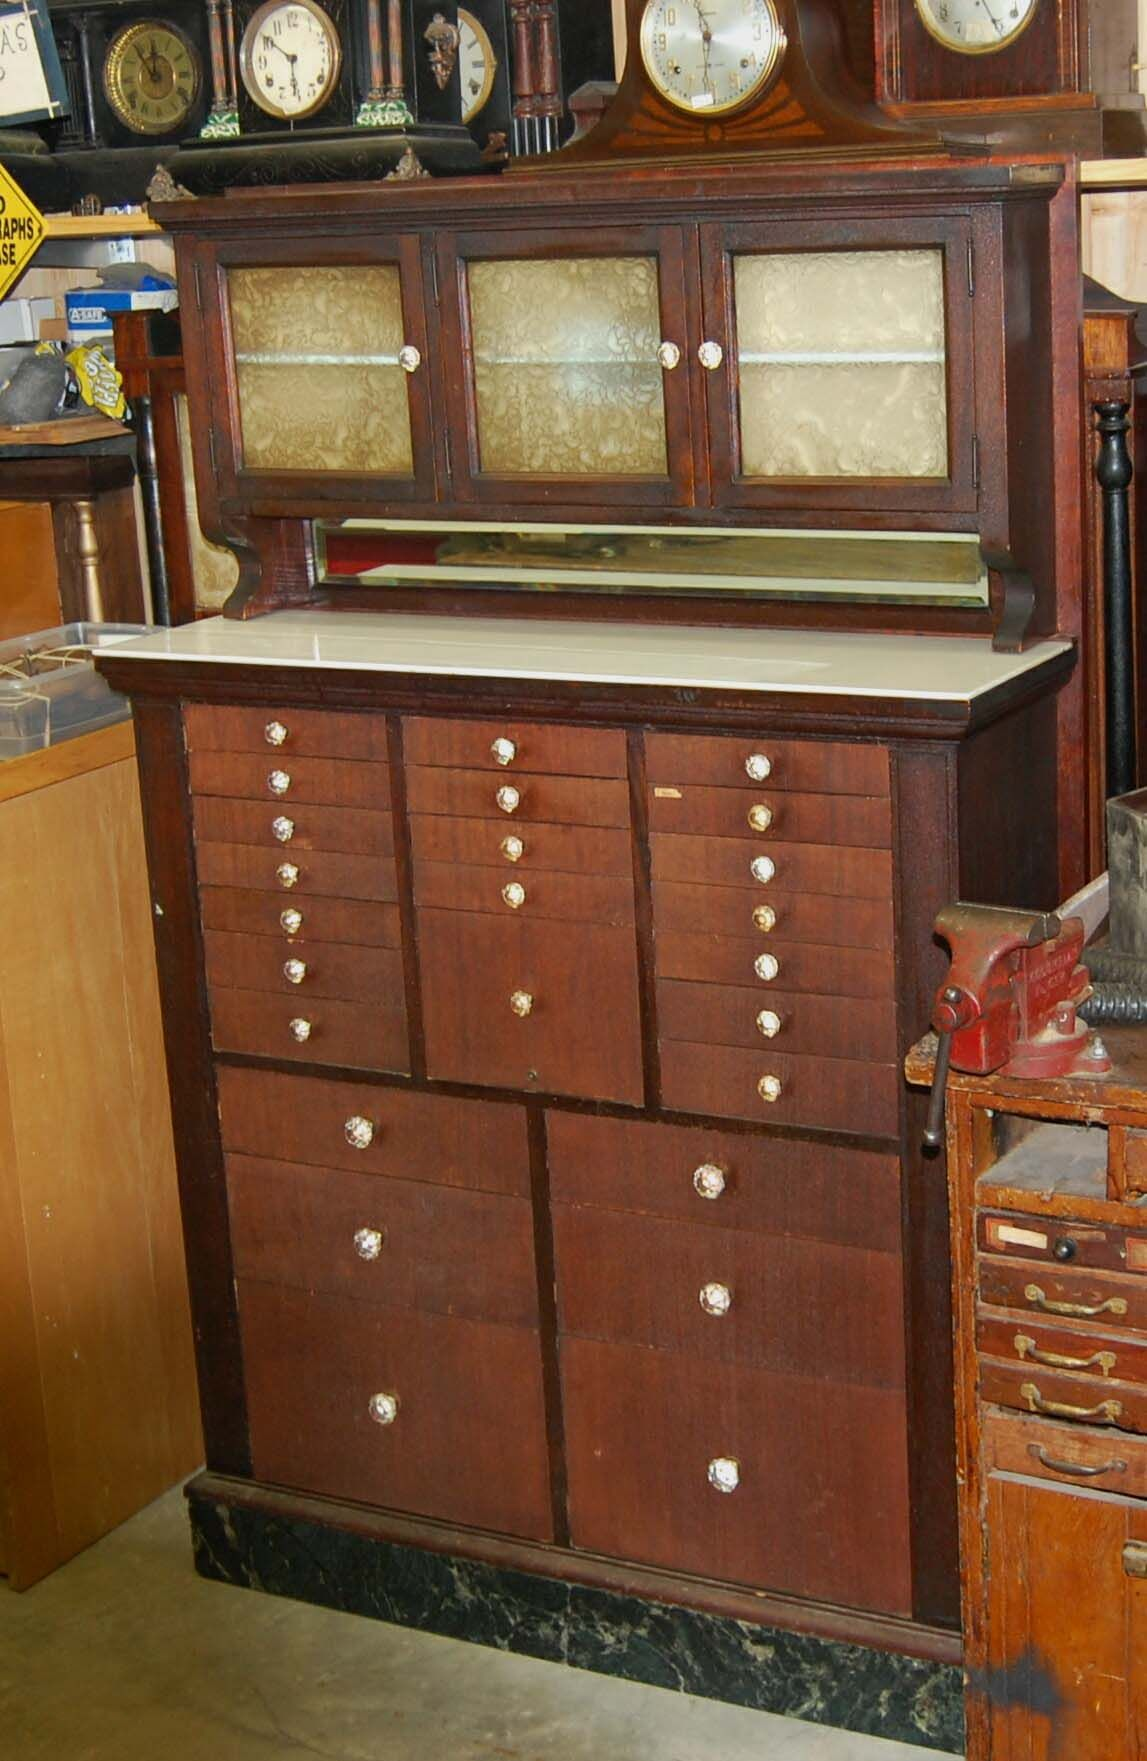 Vintage dental cabinet (note all the slender drawers) to use as a ...